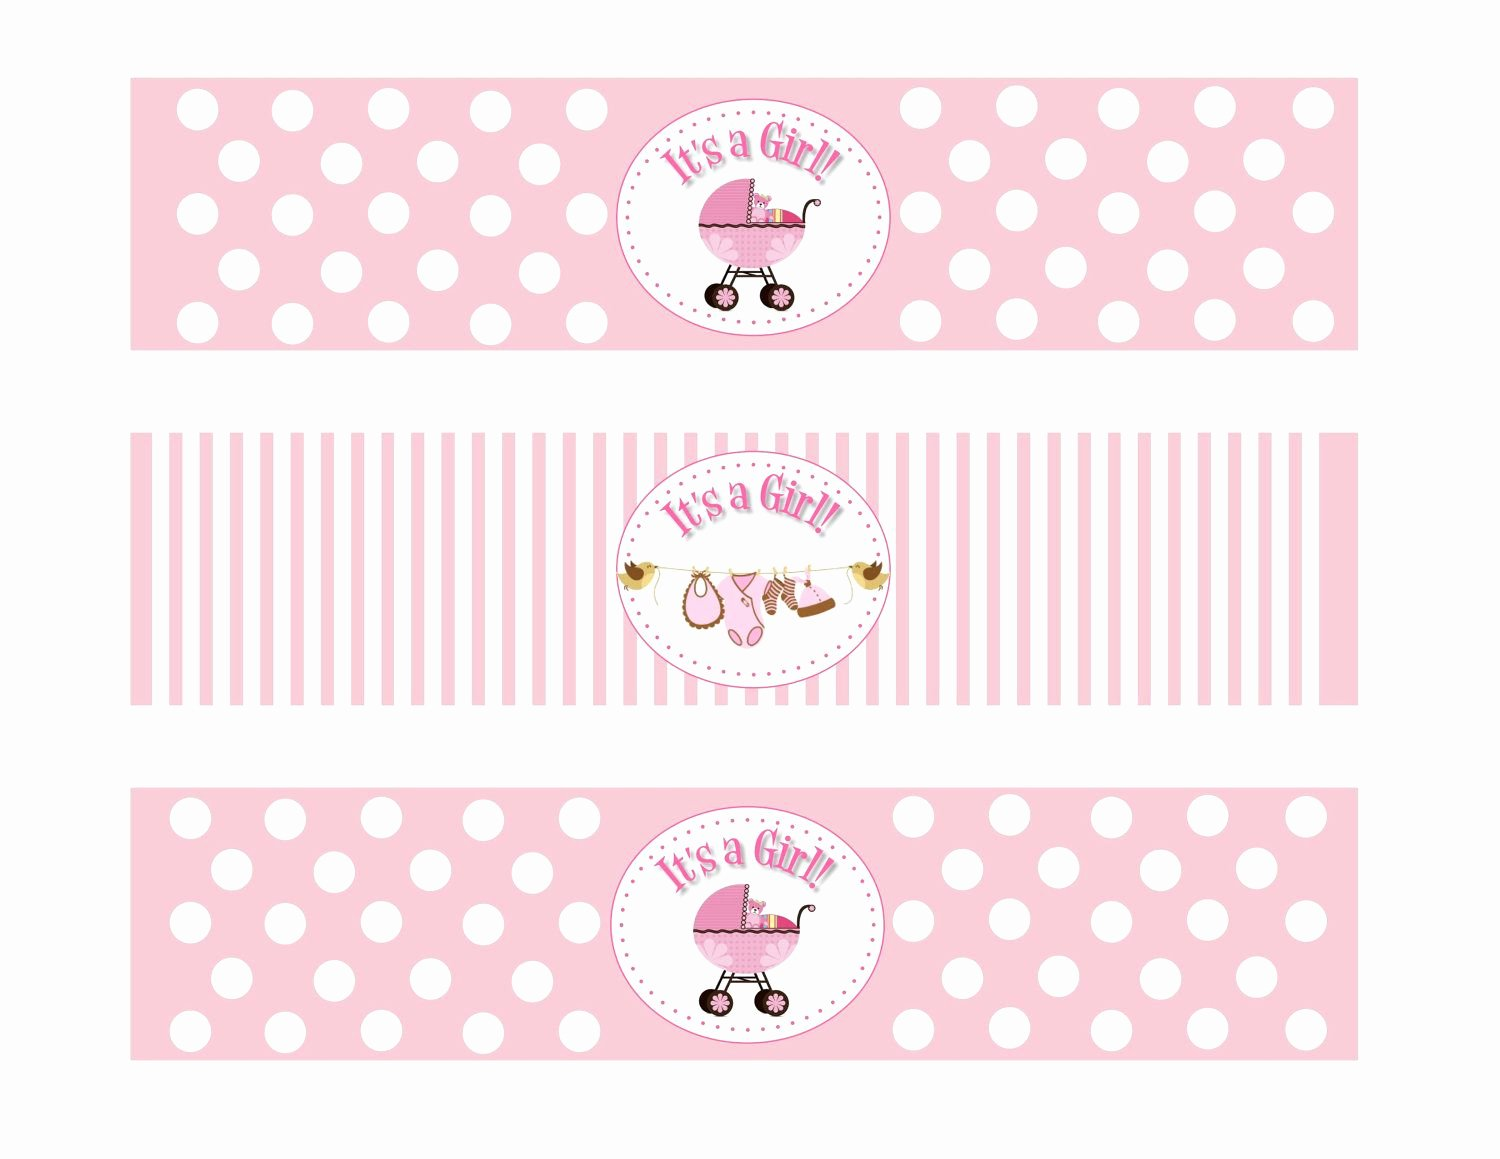 Baby Shower Water Bottle Label Template Free Best Of Baby Shower Water Bottle Labels